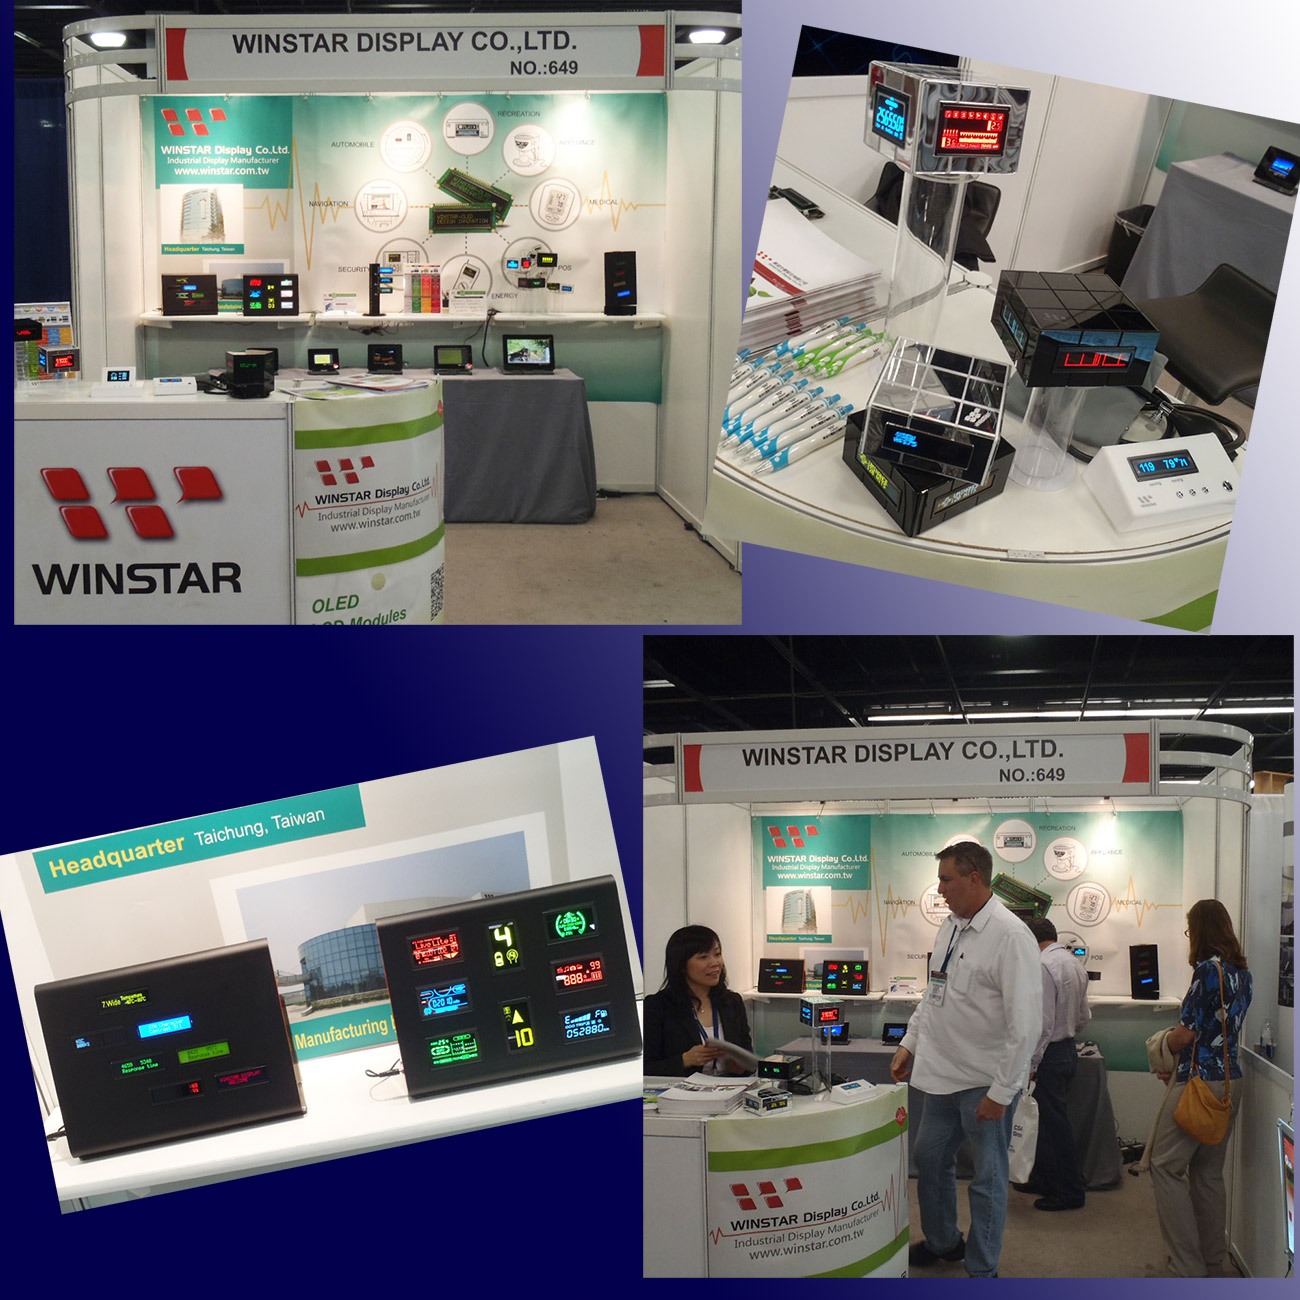 MD&M WEST 2014 USA - Winstar Display